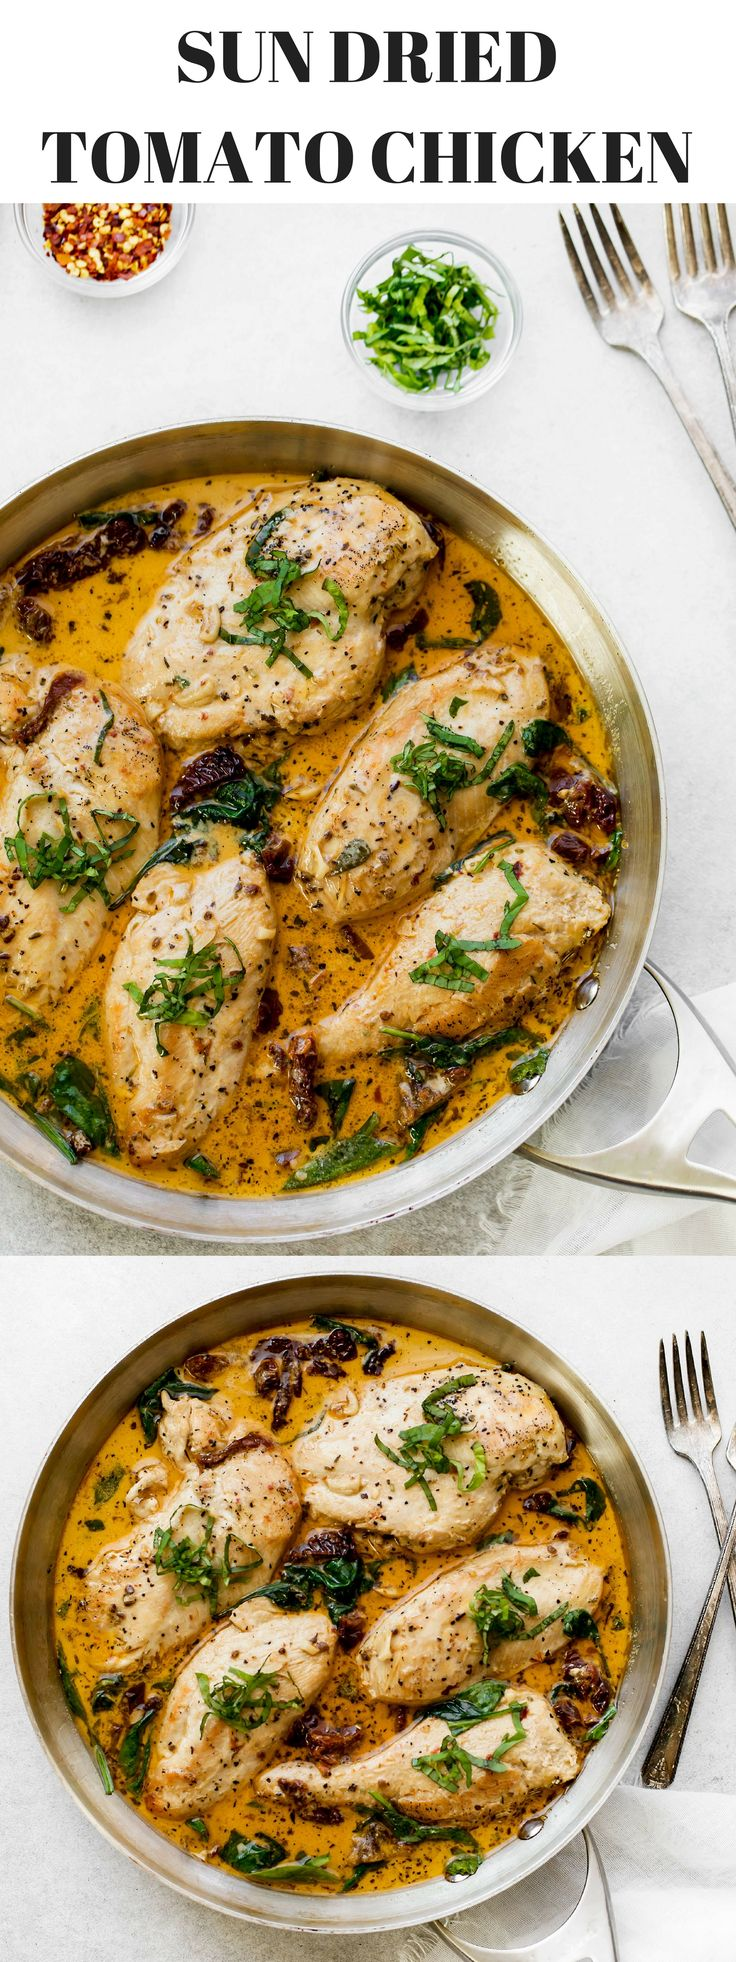 Looking for chicken breast recipes? Try this Sun Dried Tomato Chicken. One of my favorite quick dinner recipes, the lean protein cooked in creamy sauce with basil, sun–dried tomatoes in olive oil, garlic, Italian seasoning, half and half, and chicken broth.  Chicken breast without skin is a great lean protein source and a low-fat food to help burn extra calories for effective weight loss. Each half of chicken breast has more than 22 grams of protein and 2.5 grams of fat.